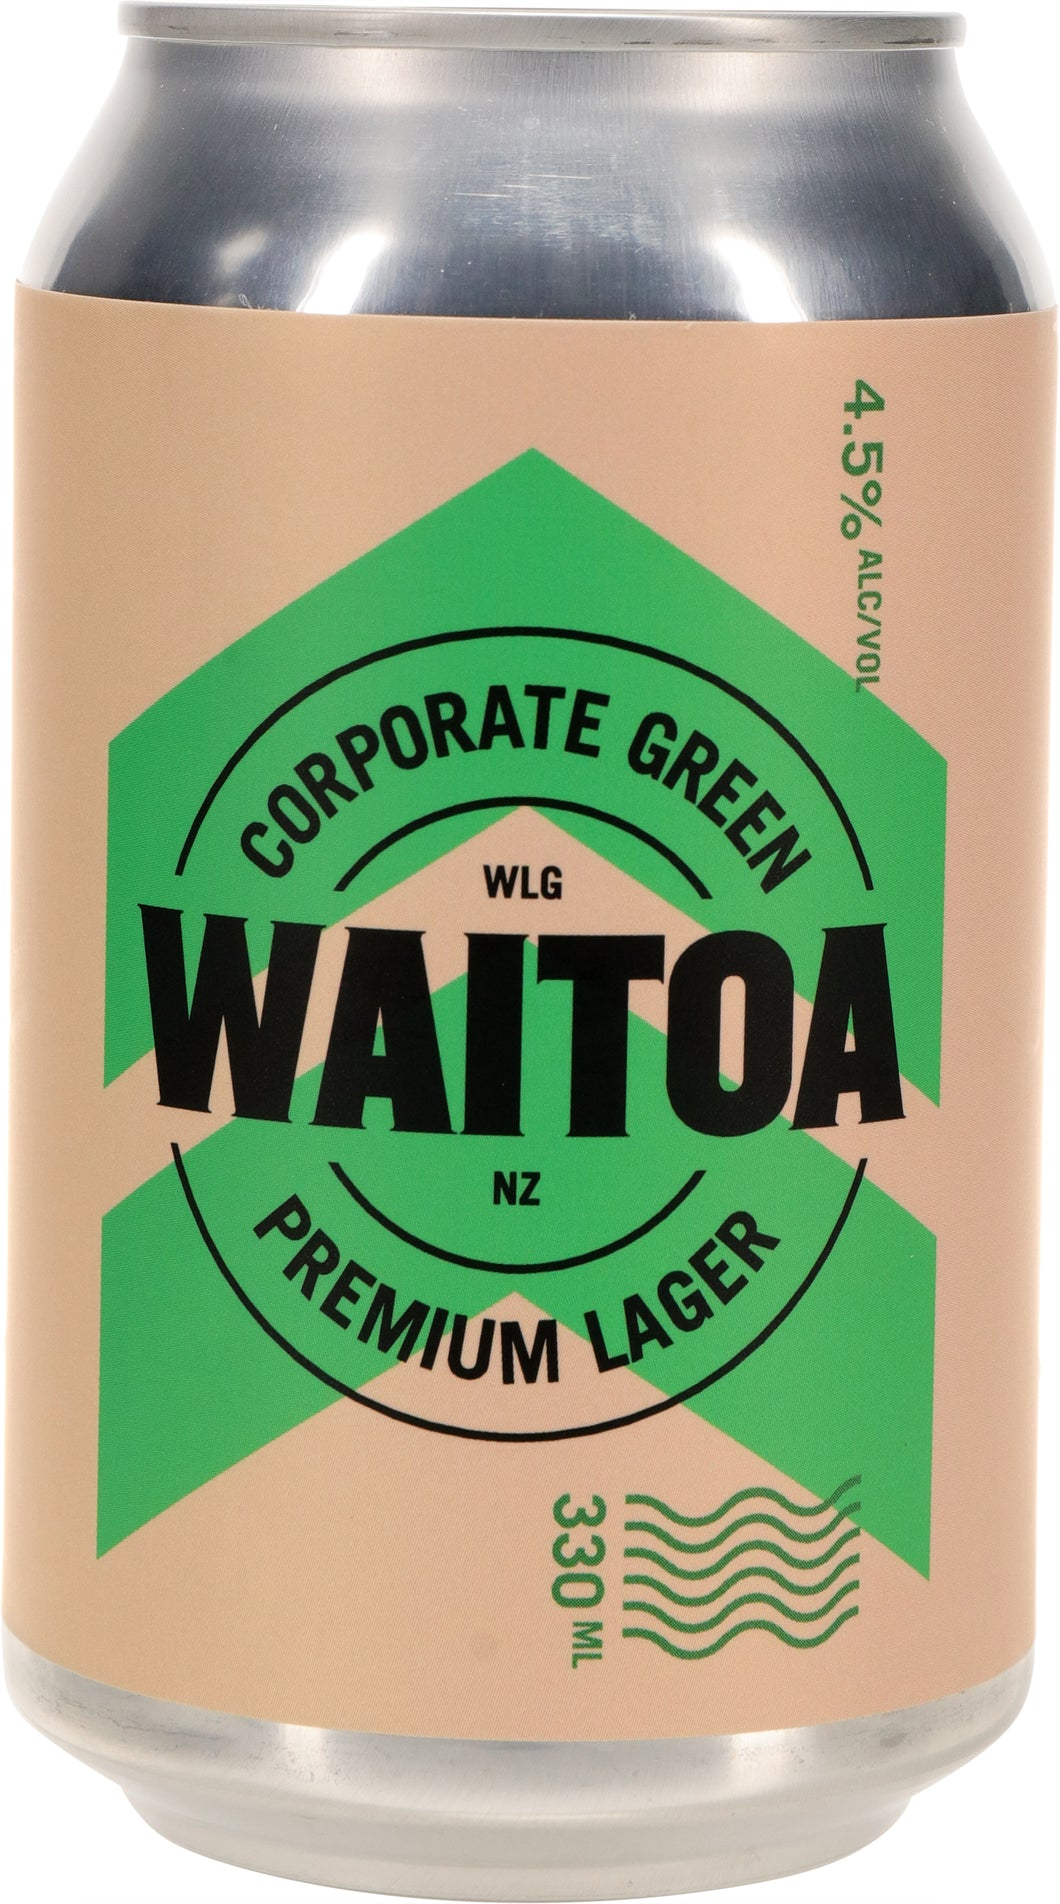 CORPORATE GREEN LAGER - 24 PACK